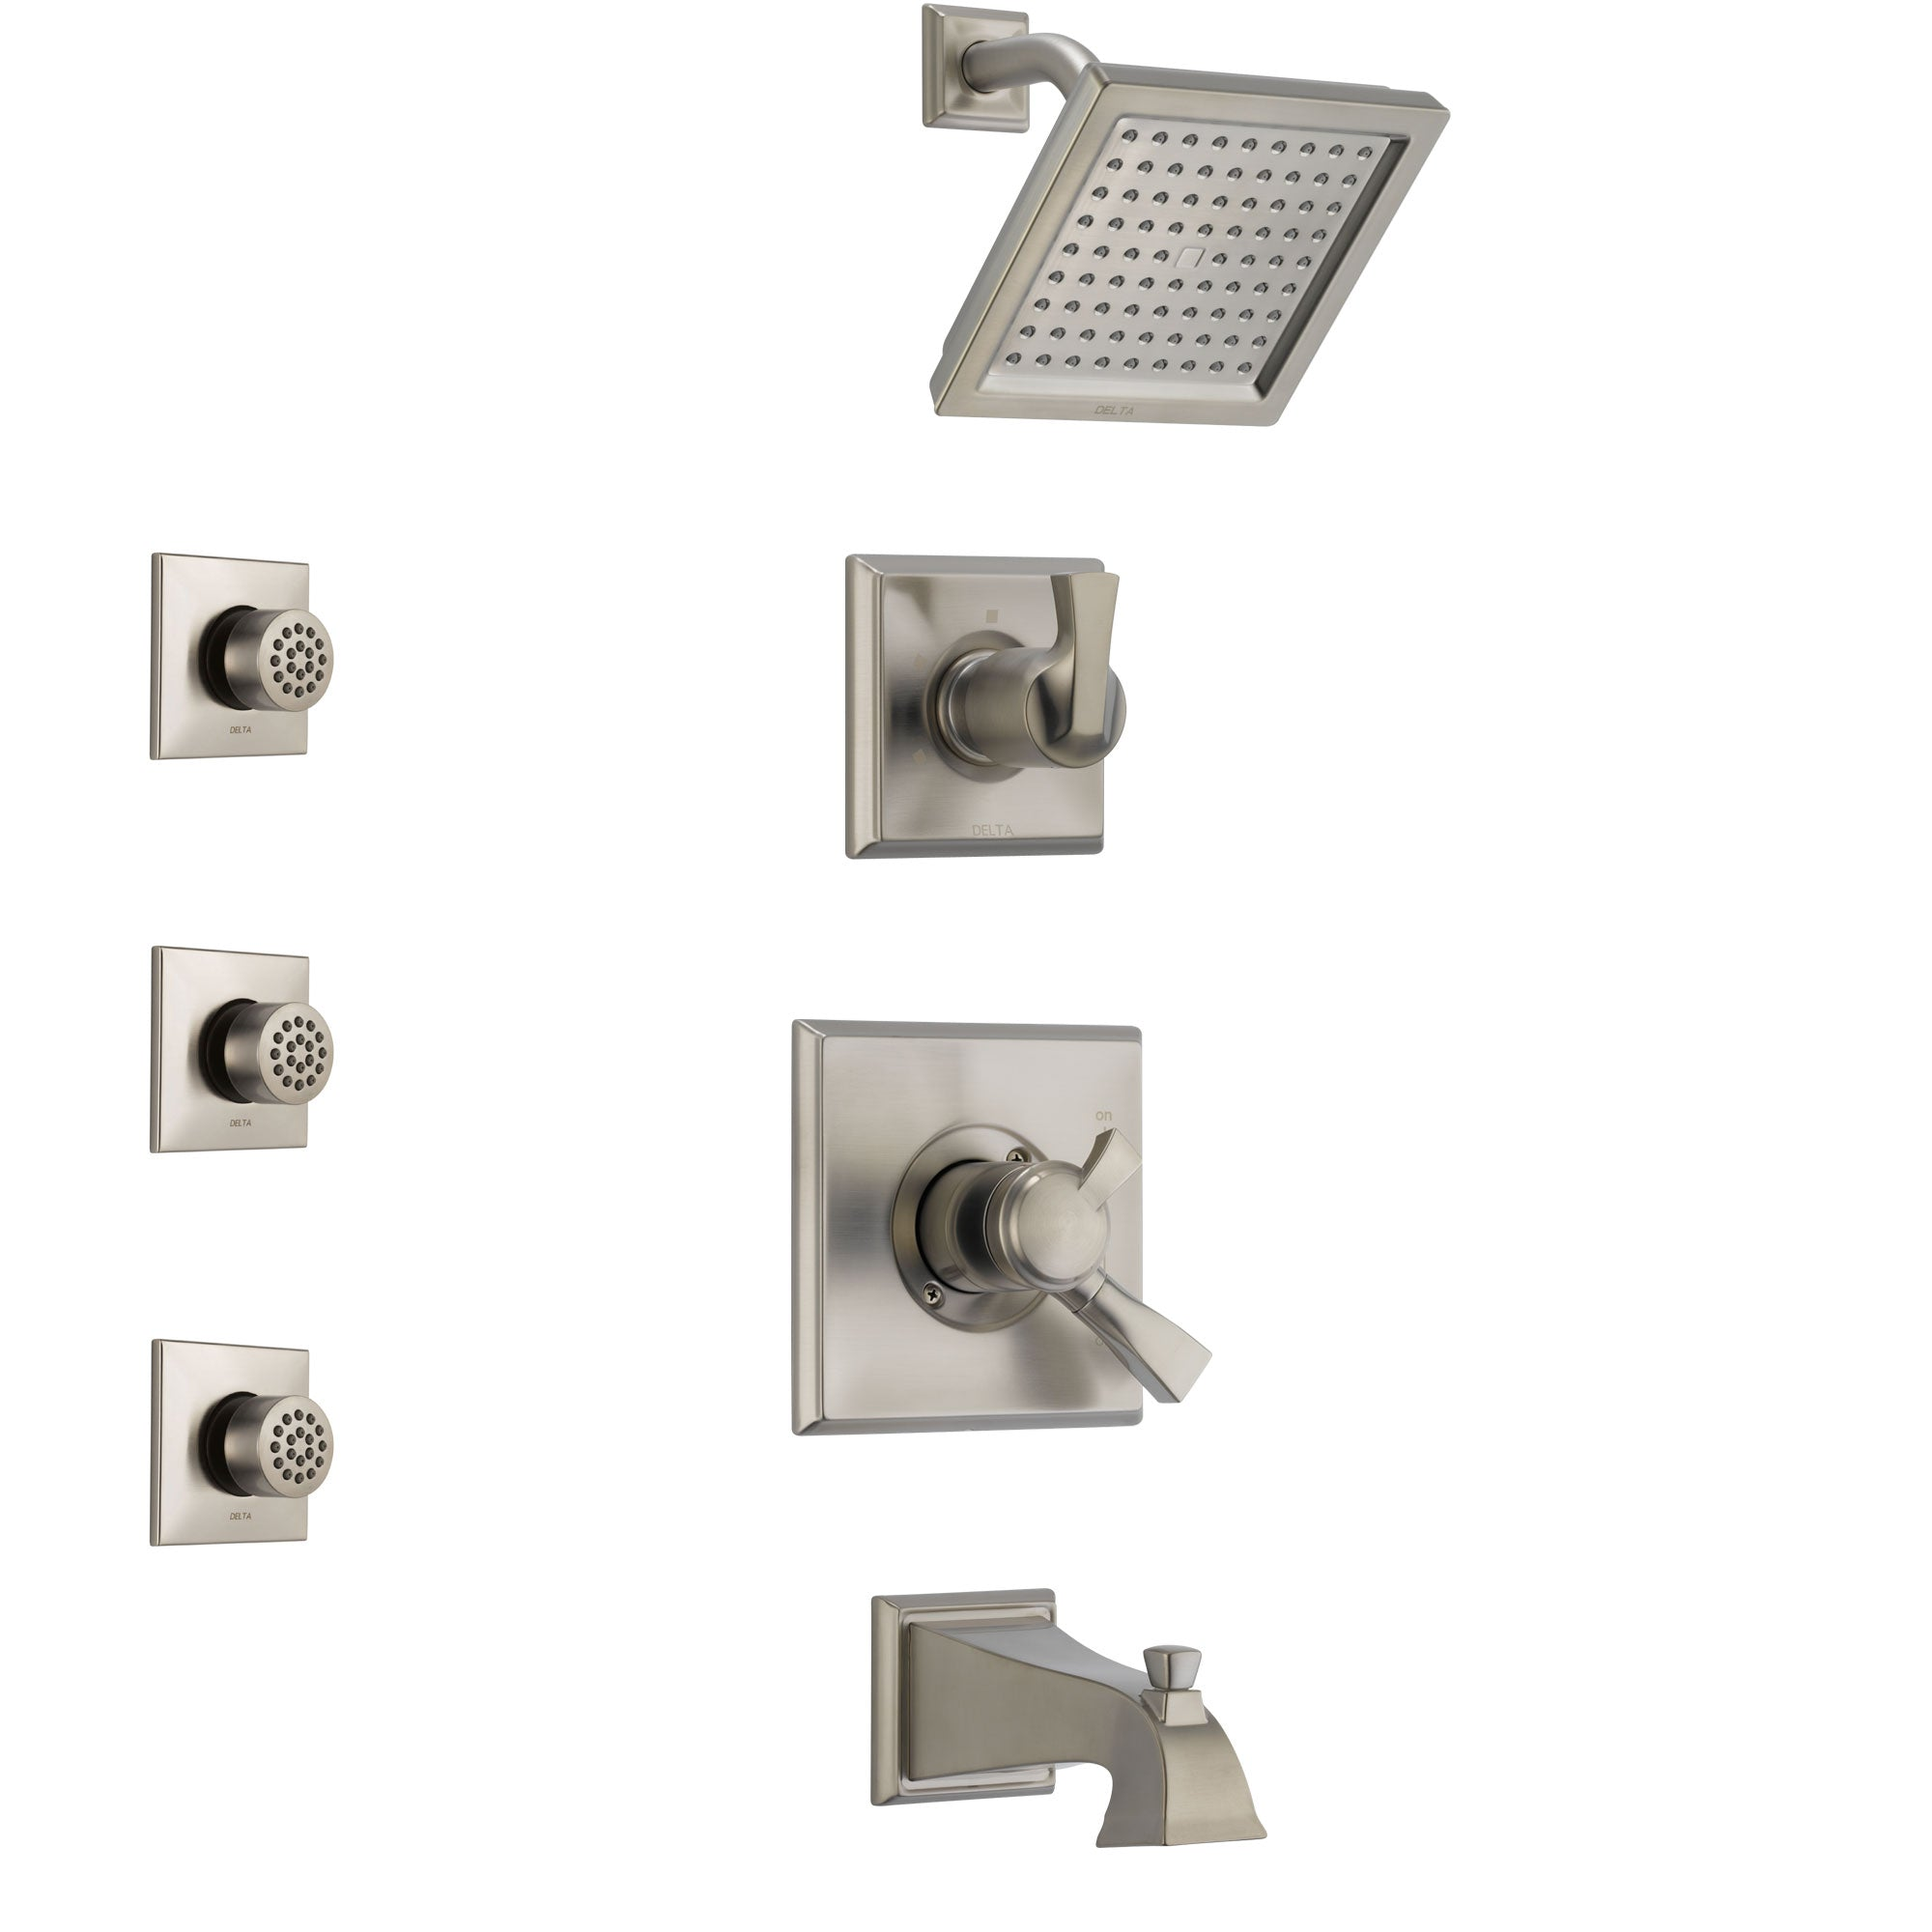 Delta Dryden Stainless Steel Finish Tub and Shower System with Dual Control Handle, 3-Setting Diverter, Showerhead, and 3 Body Sprays SS174511SS1